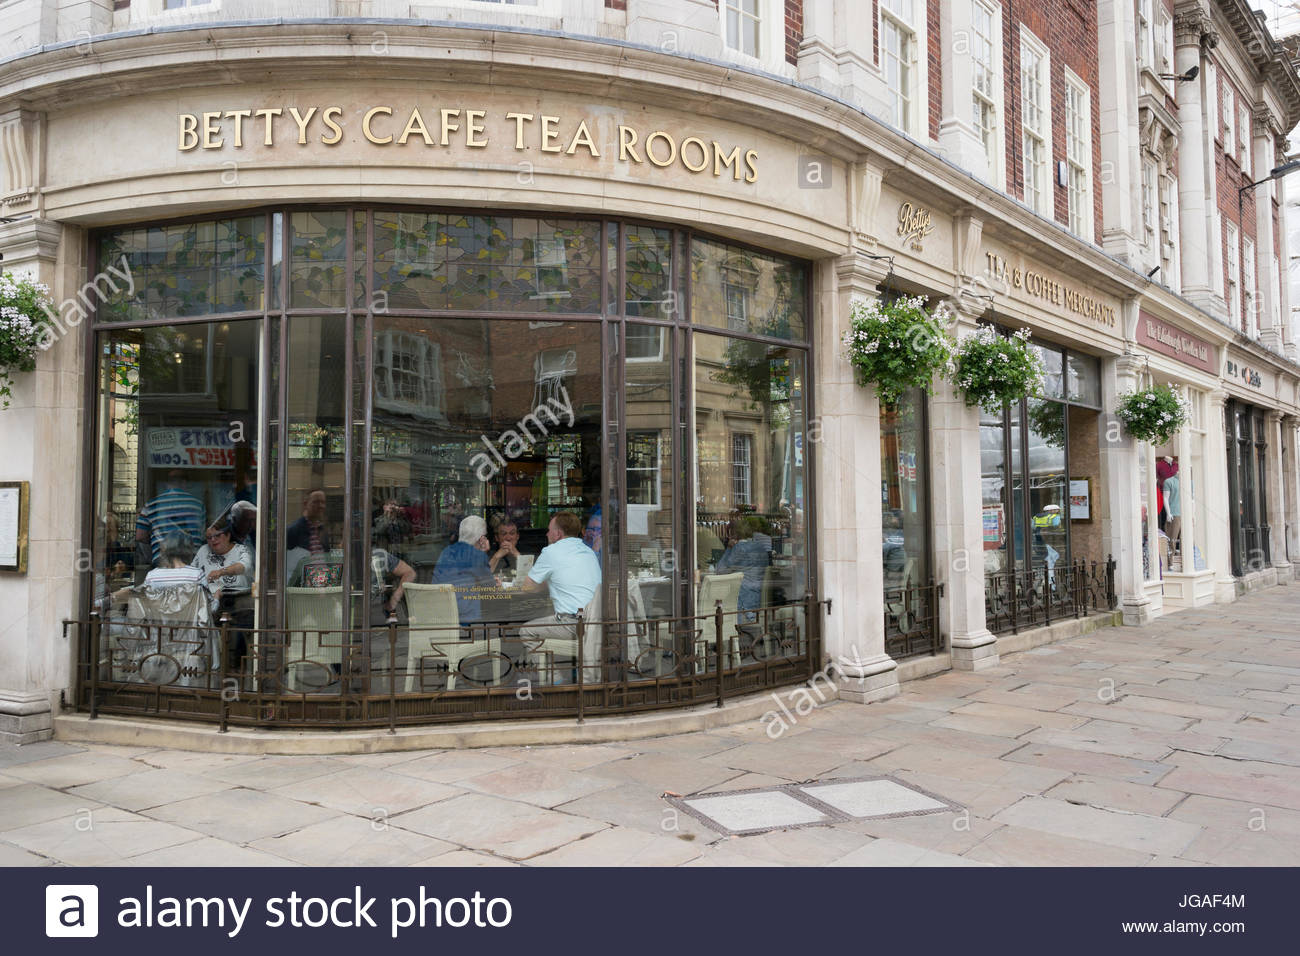 Bettys Café and Tearoom in York, England, UK - Stock Image